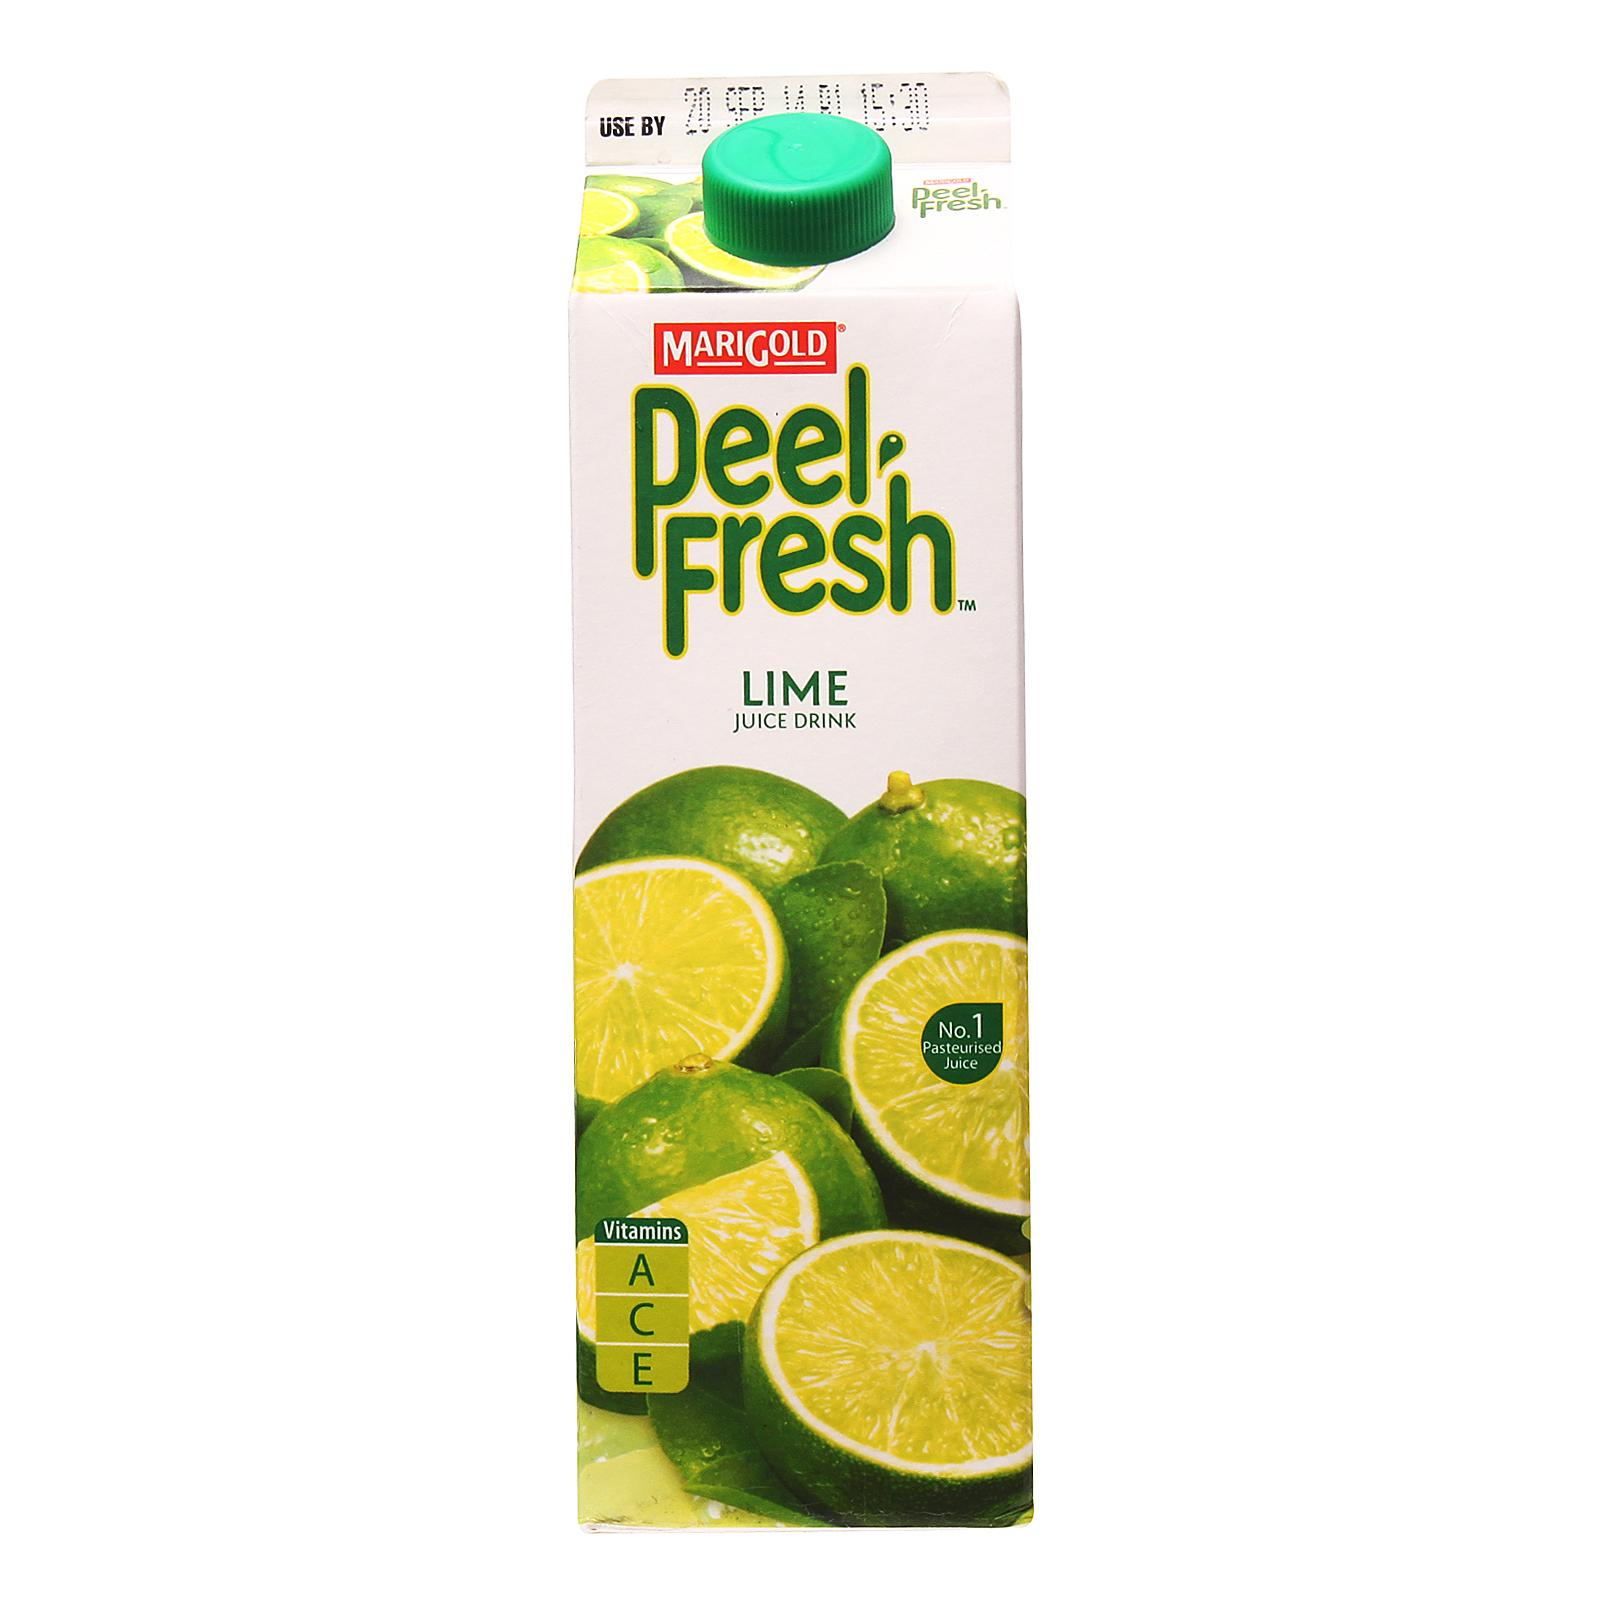 MARIGOLD PEEL FRESH Lime Juice Drink 1L